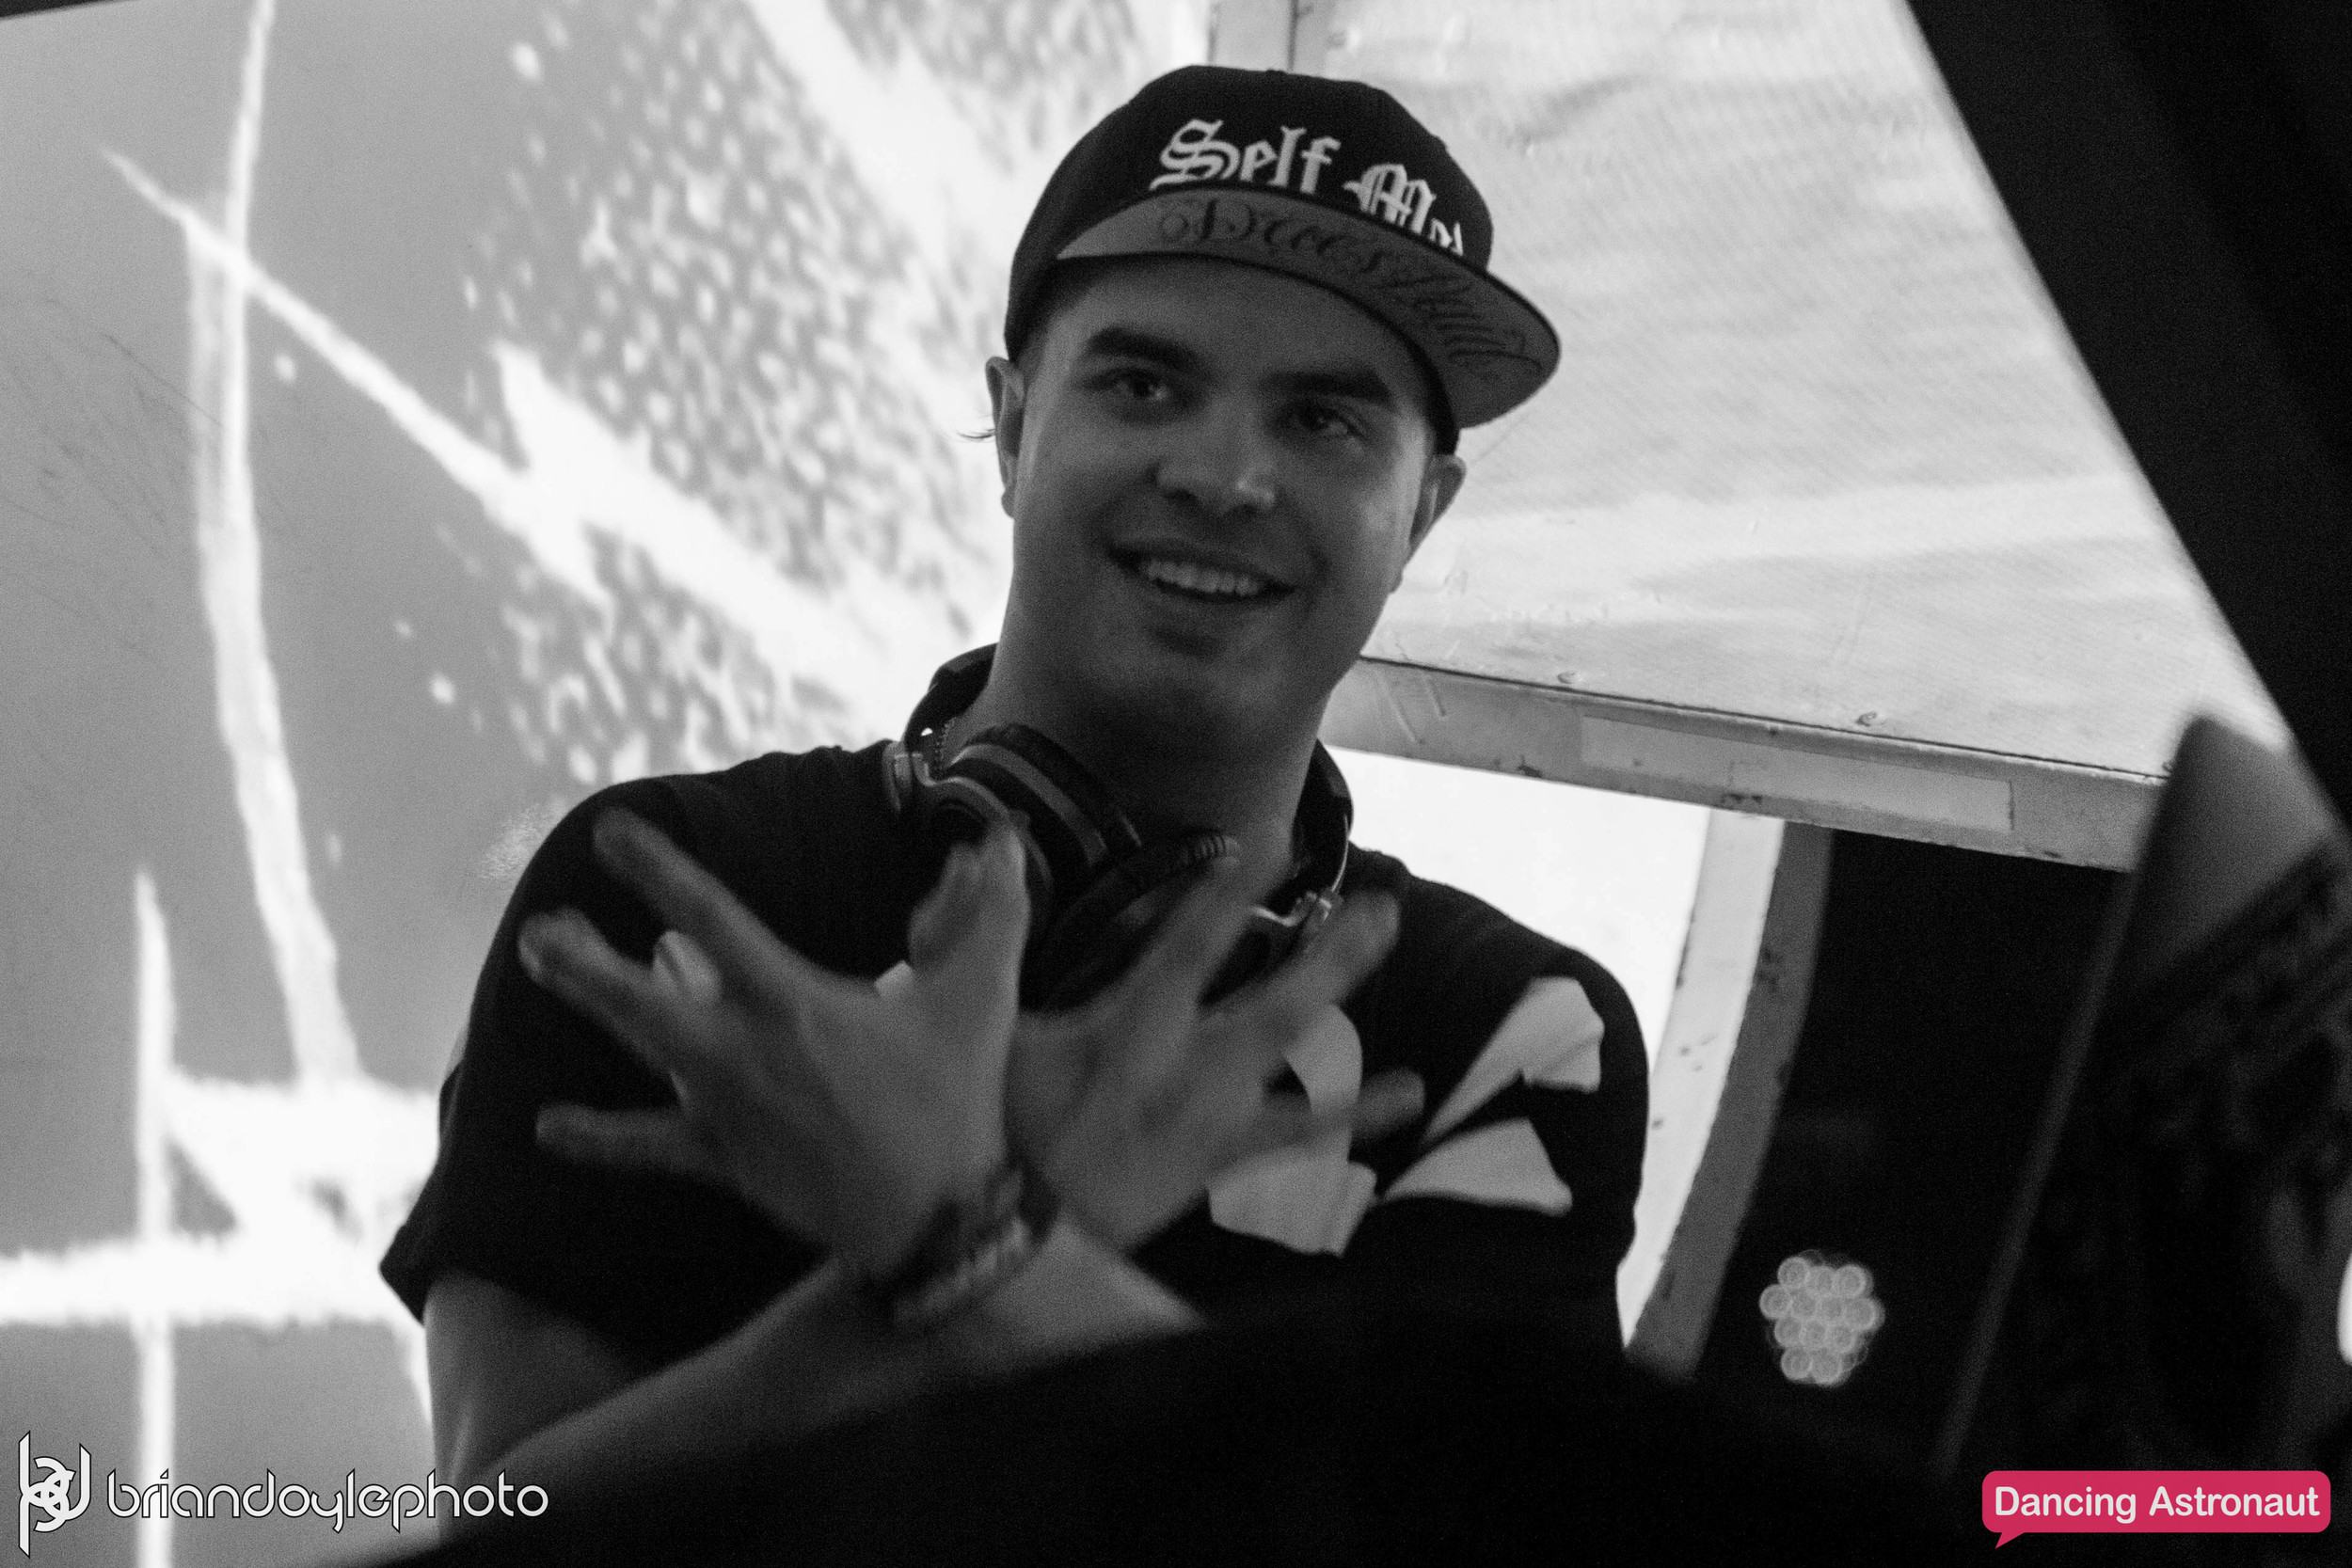 Datsik Ninja Nation Tour at Exchange LA 15.03.2015-39.jpg